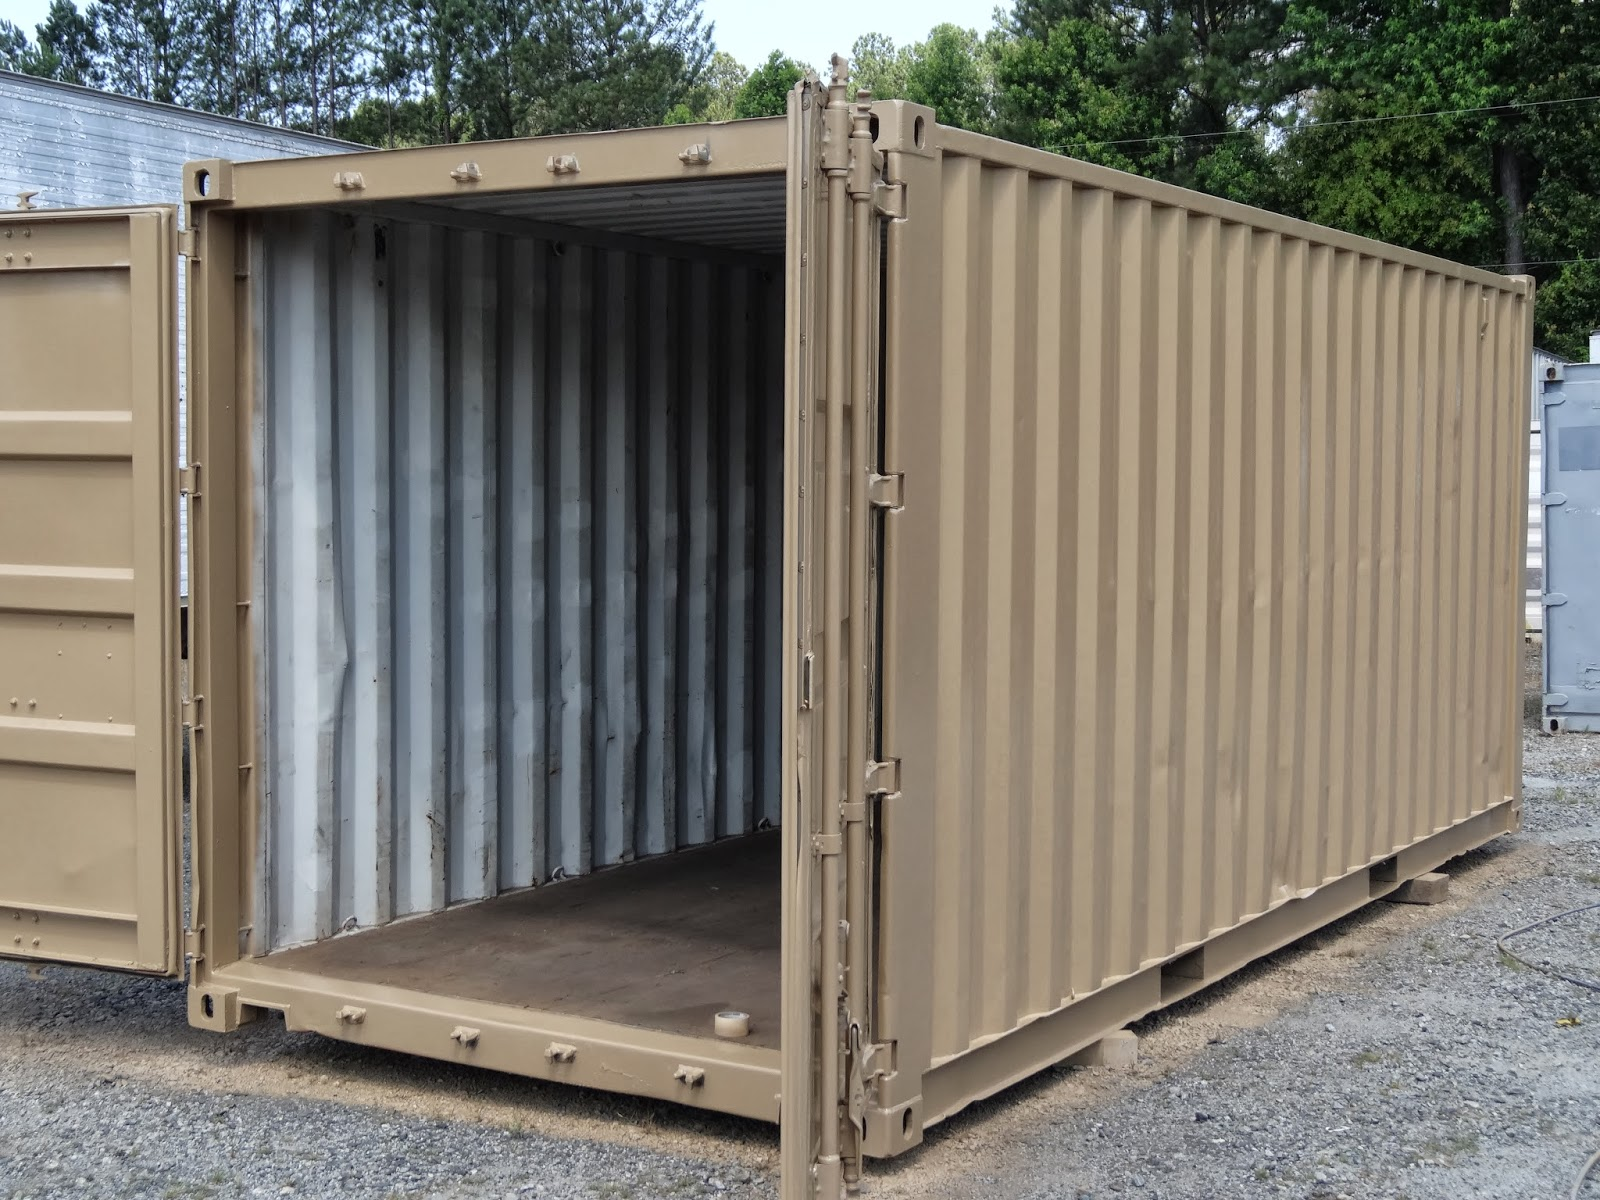 Shipping Container Storage Ideas Part - 42: Buy Used Shipping Containers For Storage.